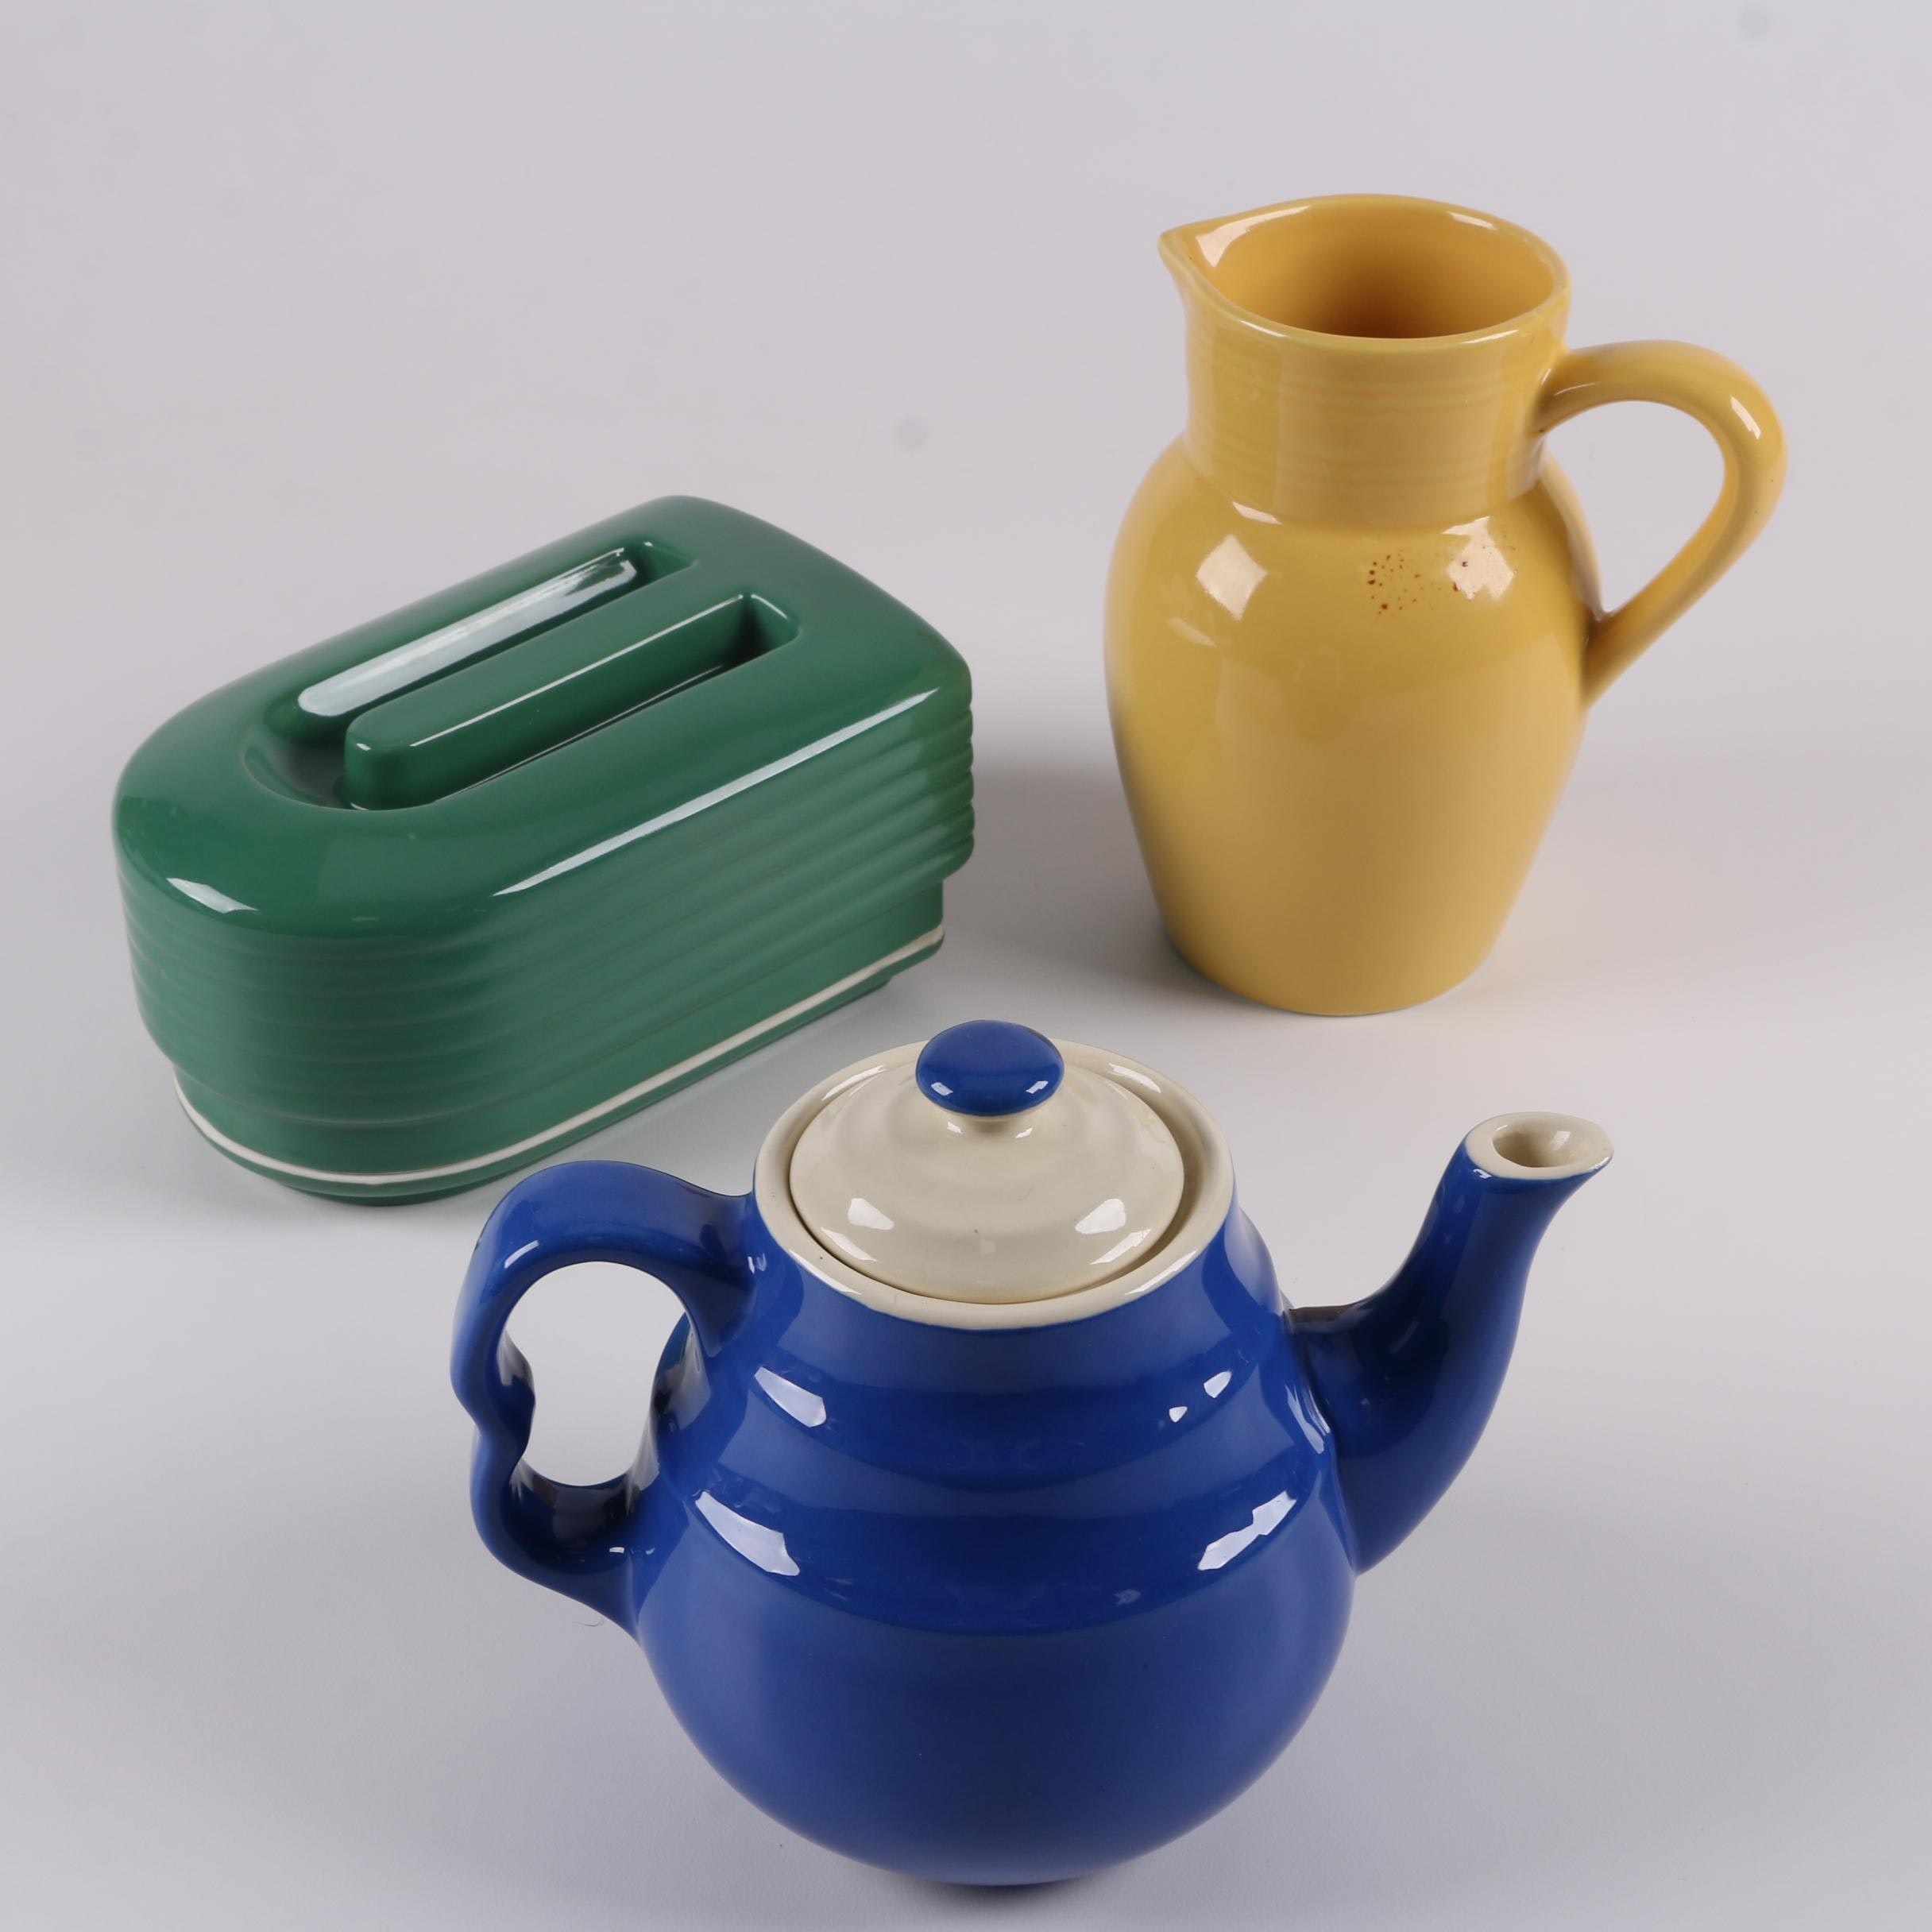 Vintage Hall for Westinghouse Refrigerator Container and Oxford Stoneware Teapot